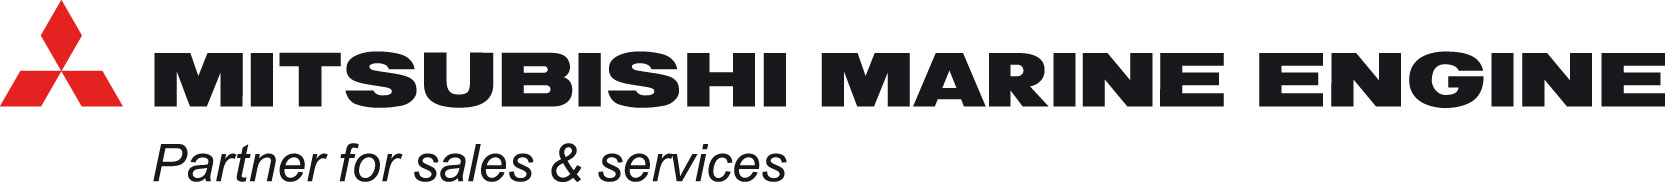 LOGO 2017 Mitsubishi Marine Engine Single Partner